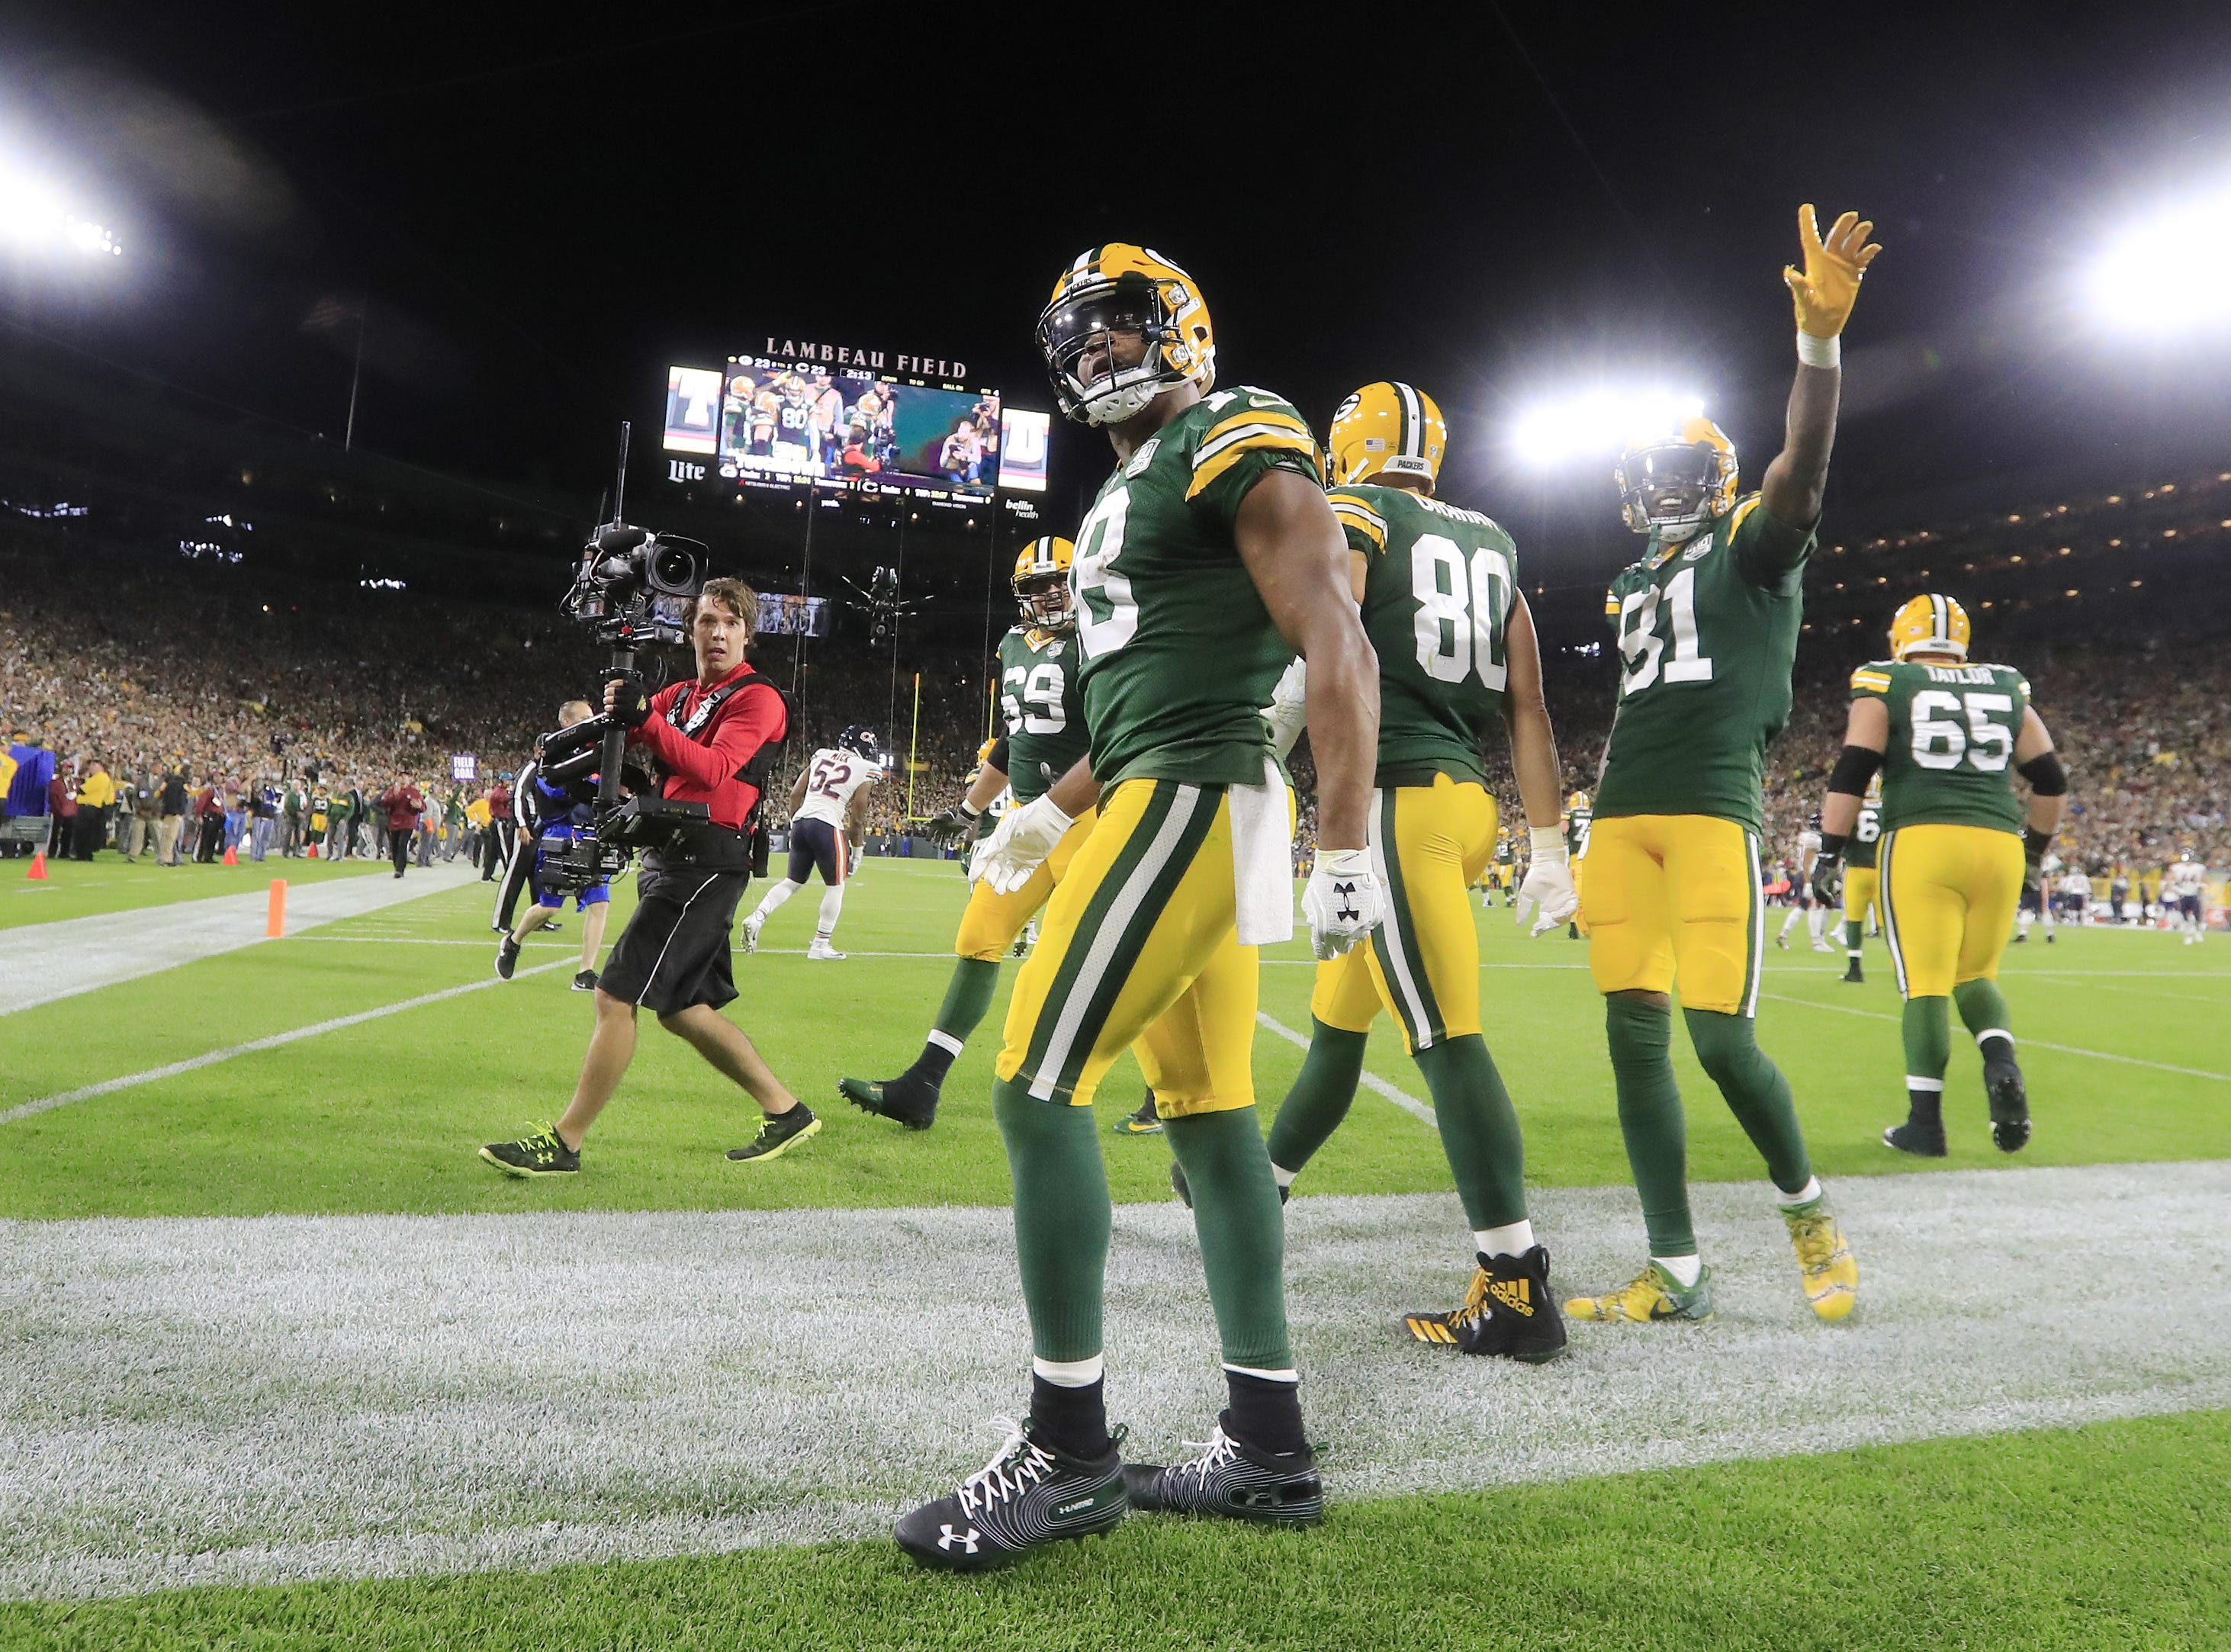 Green Bay Packers wide receiver Randall Cobb (18) celebrates after scoring a 75-yard touchdown against the Chicago Bears in the fourth quarter at Lambeau Field on Sunday, September 9, 2018 in Green Bay, Wis.